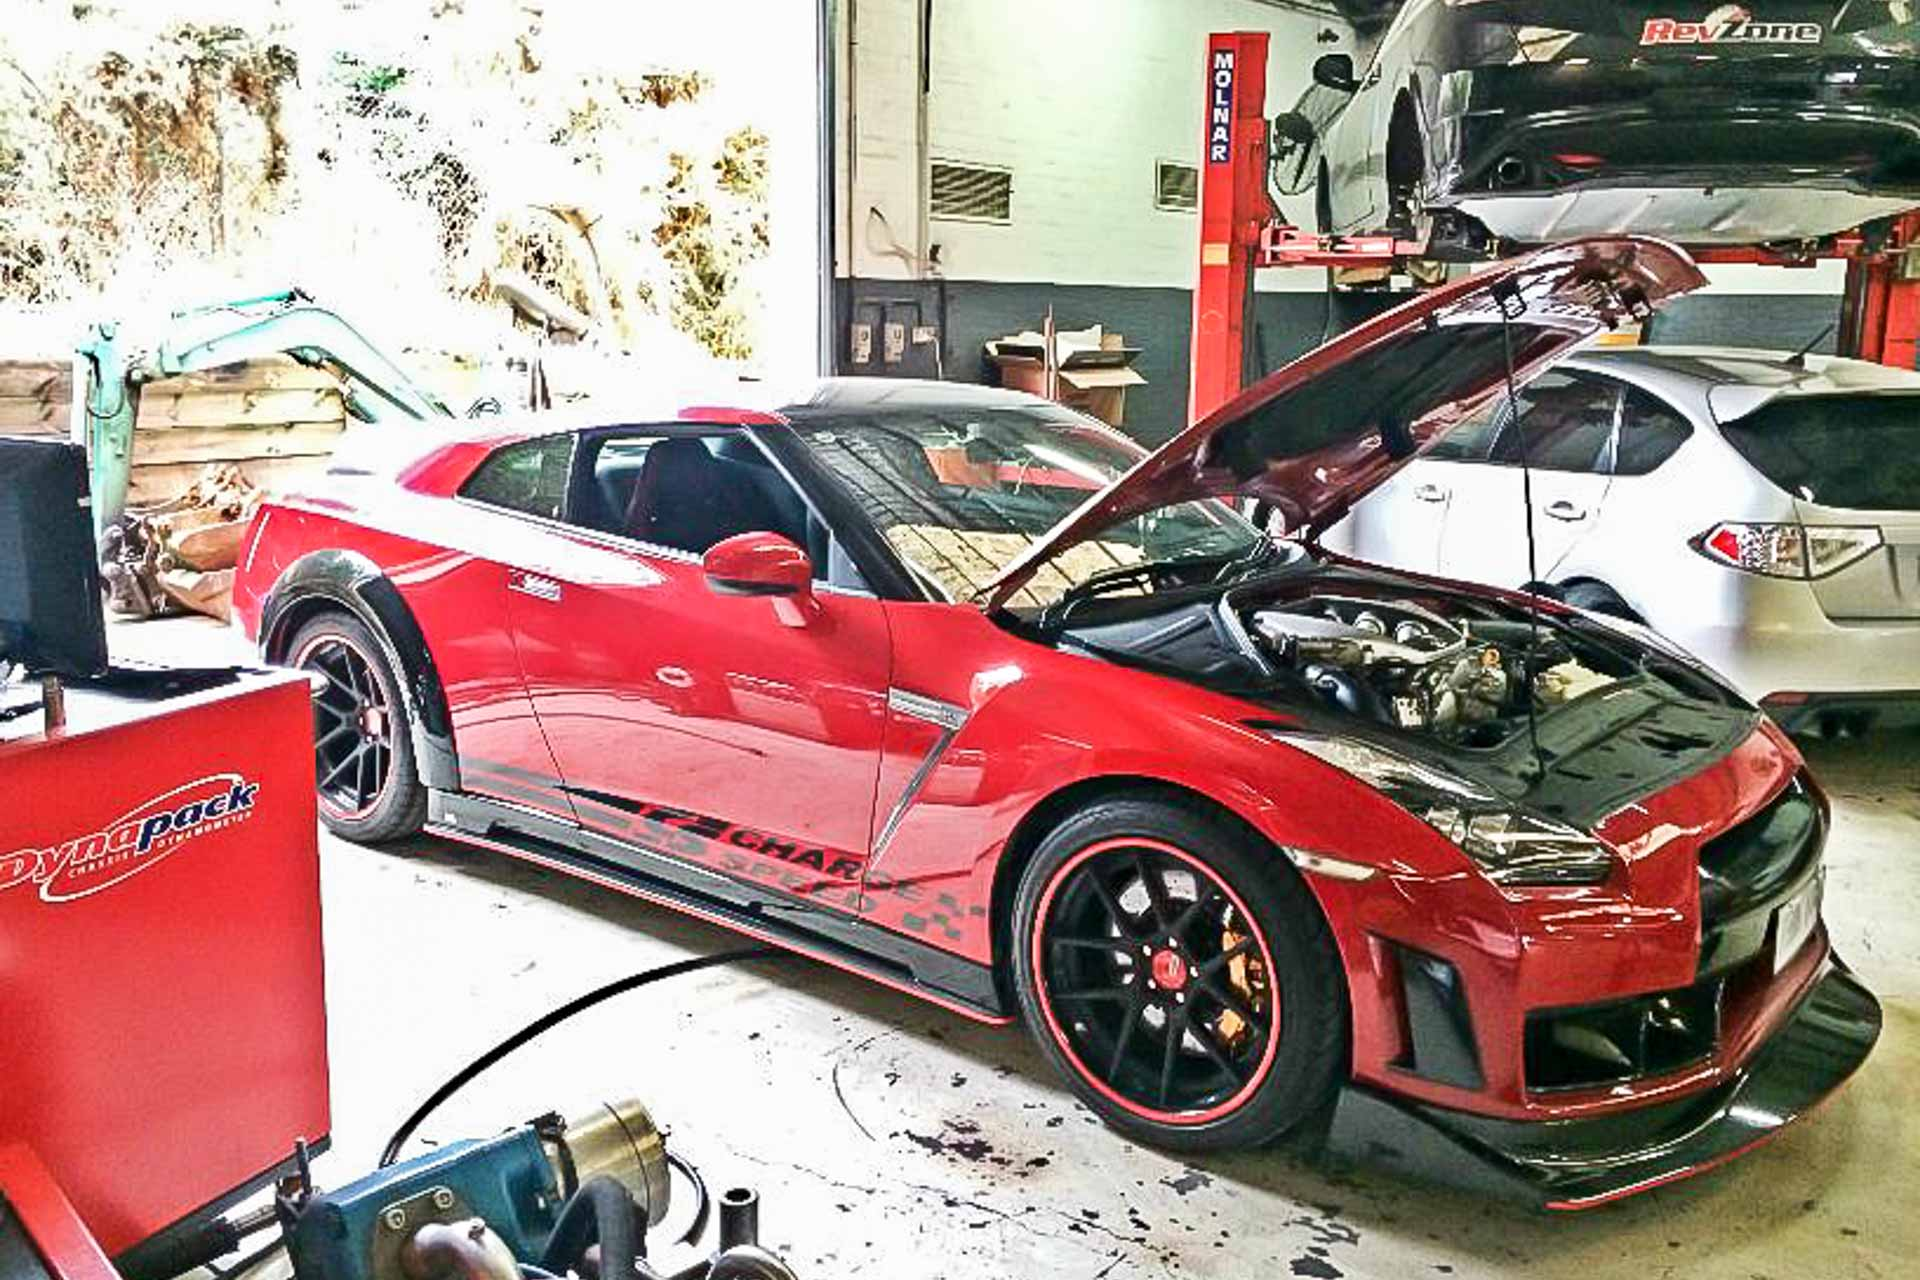 Nissan R35 GTR 1 Nissan R35 GTR At RevZone, our team of skilled mechanics and engineers take care of your R35 like if it was our own.